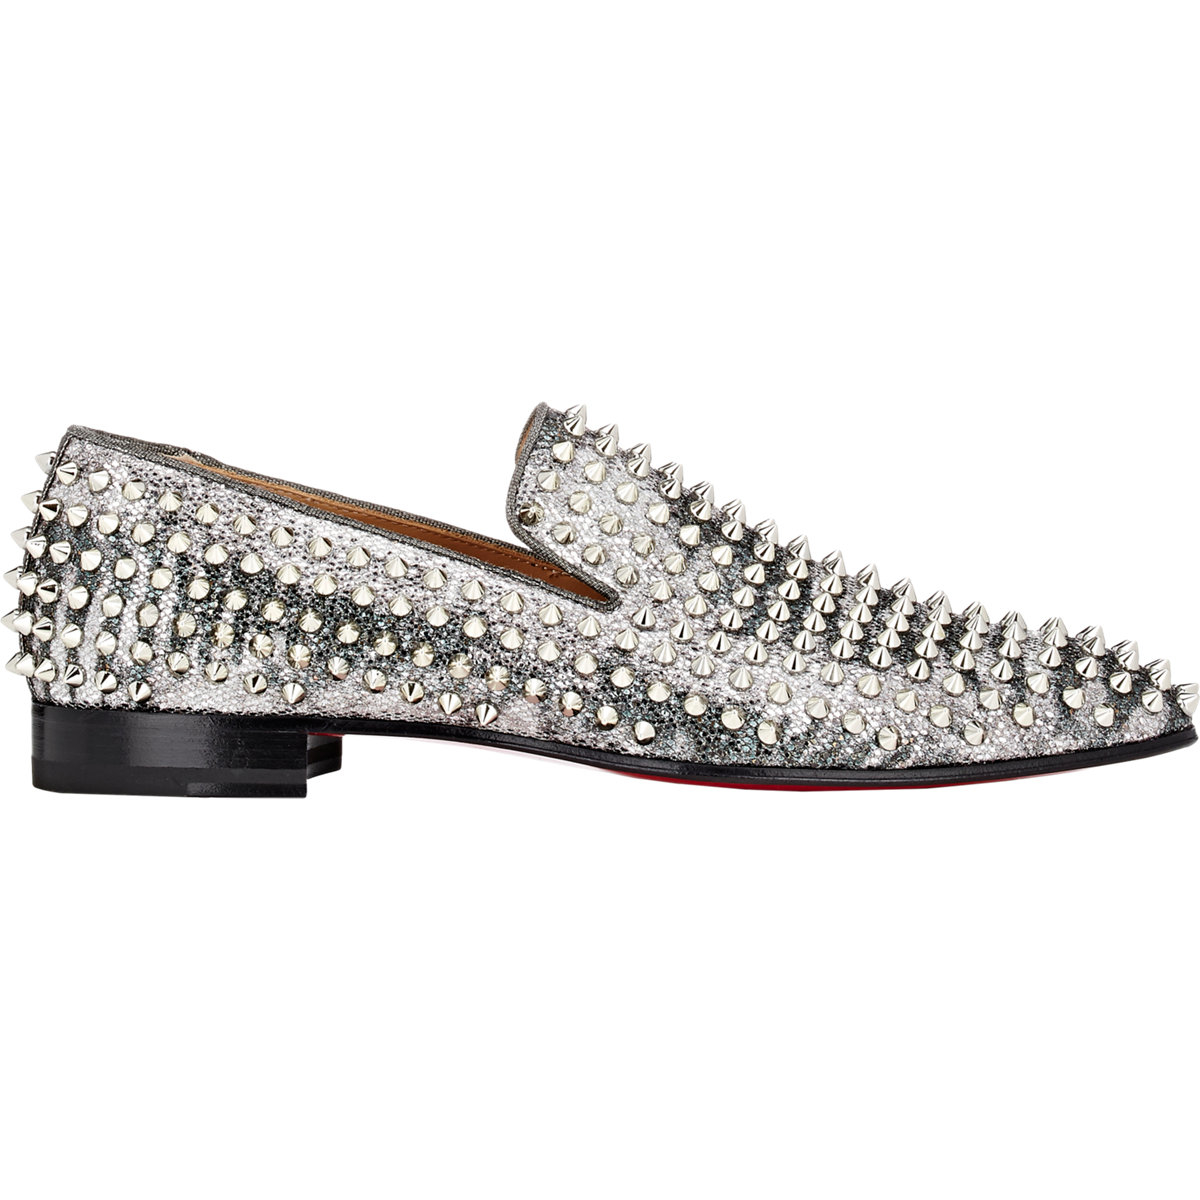 christian louboutin spiked loafers - 28 images